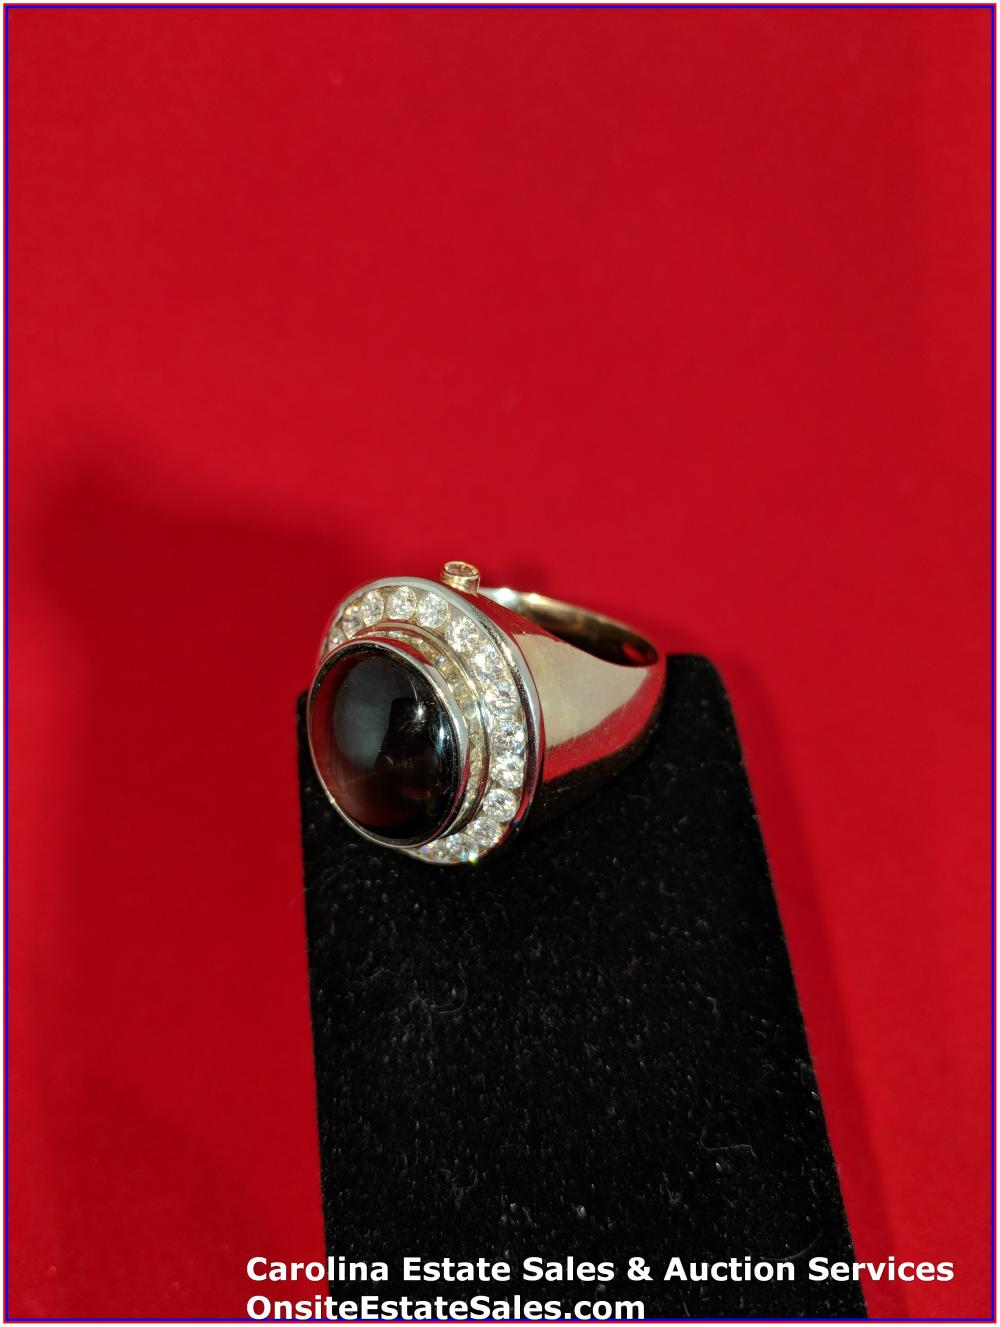 14K Gem Ring Gold 19 Grams Total Weight;  16 ct Cabochon Black Star Sapphire with 1.51 ct Diamond